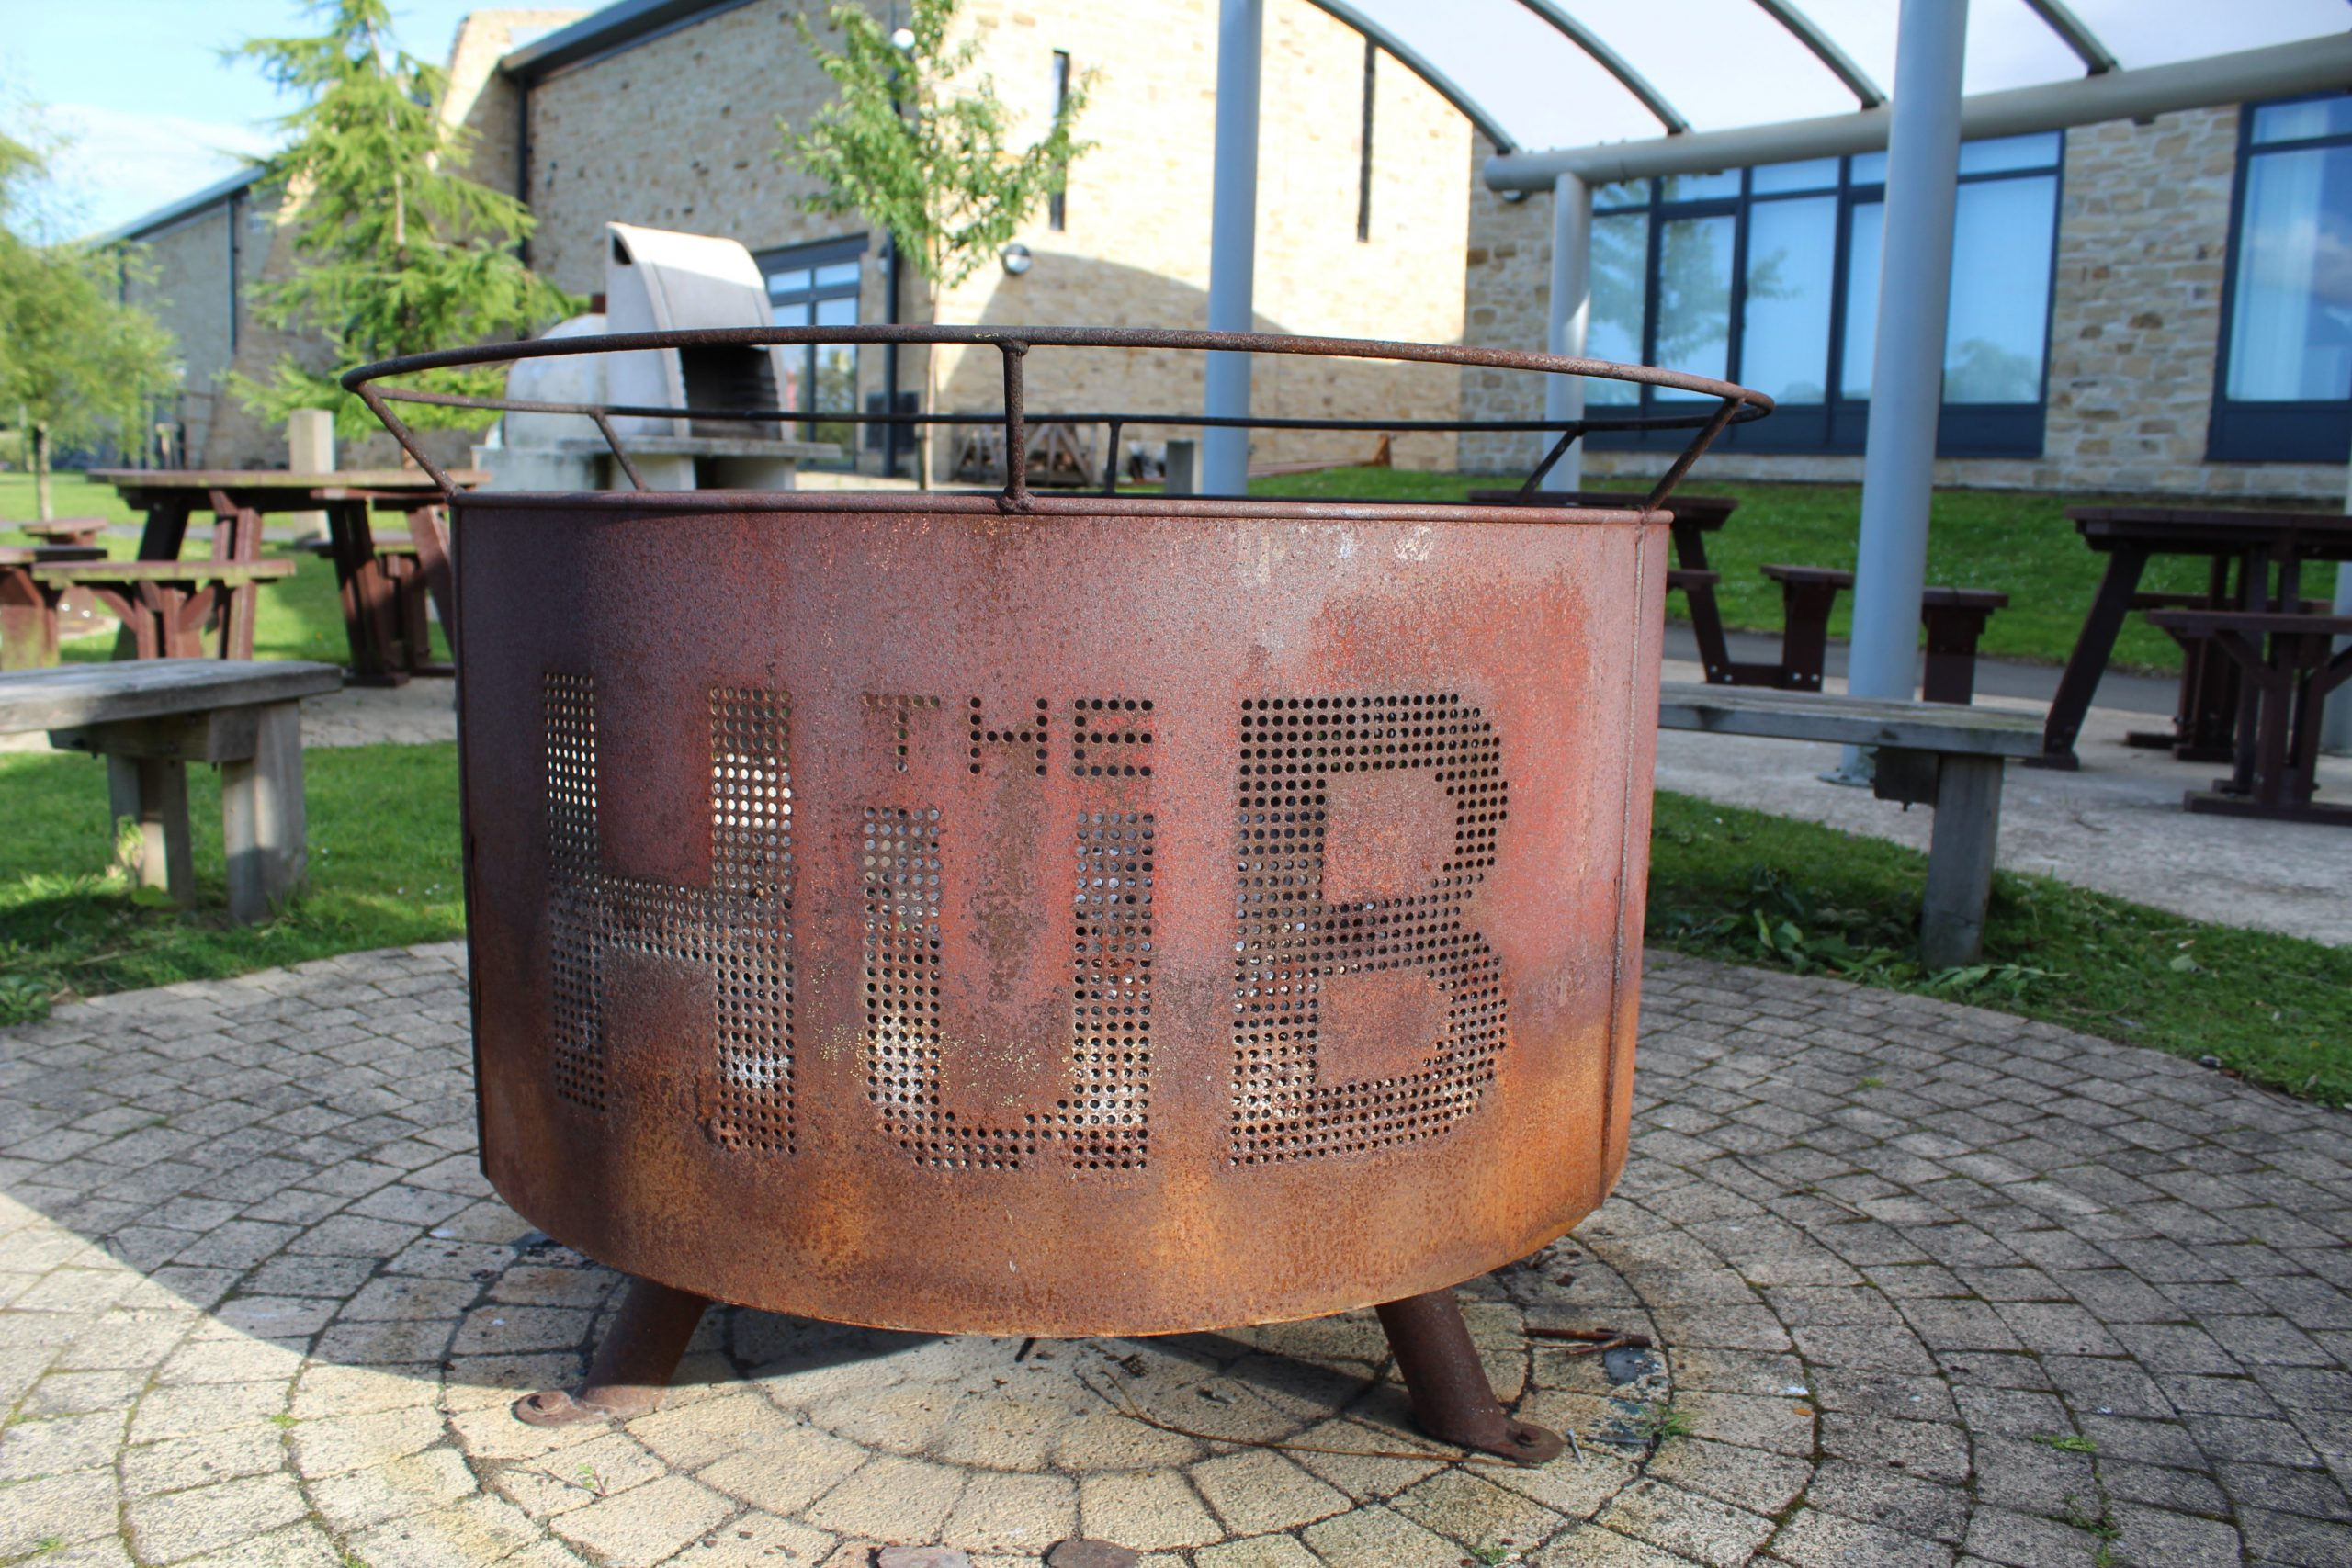 Barbeque at the Hub